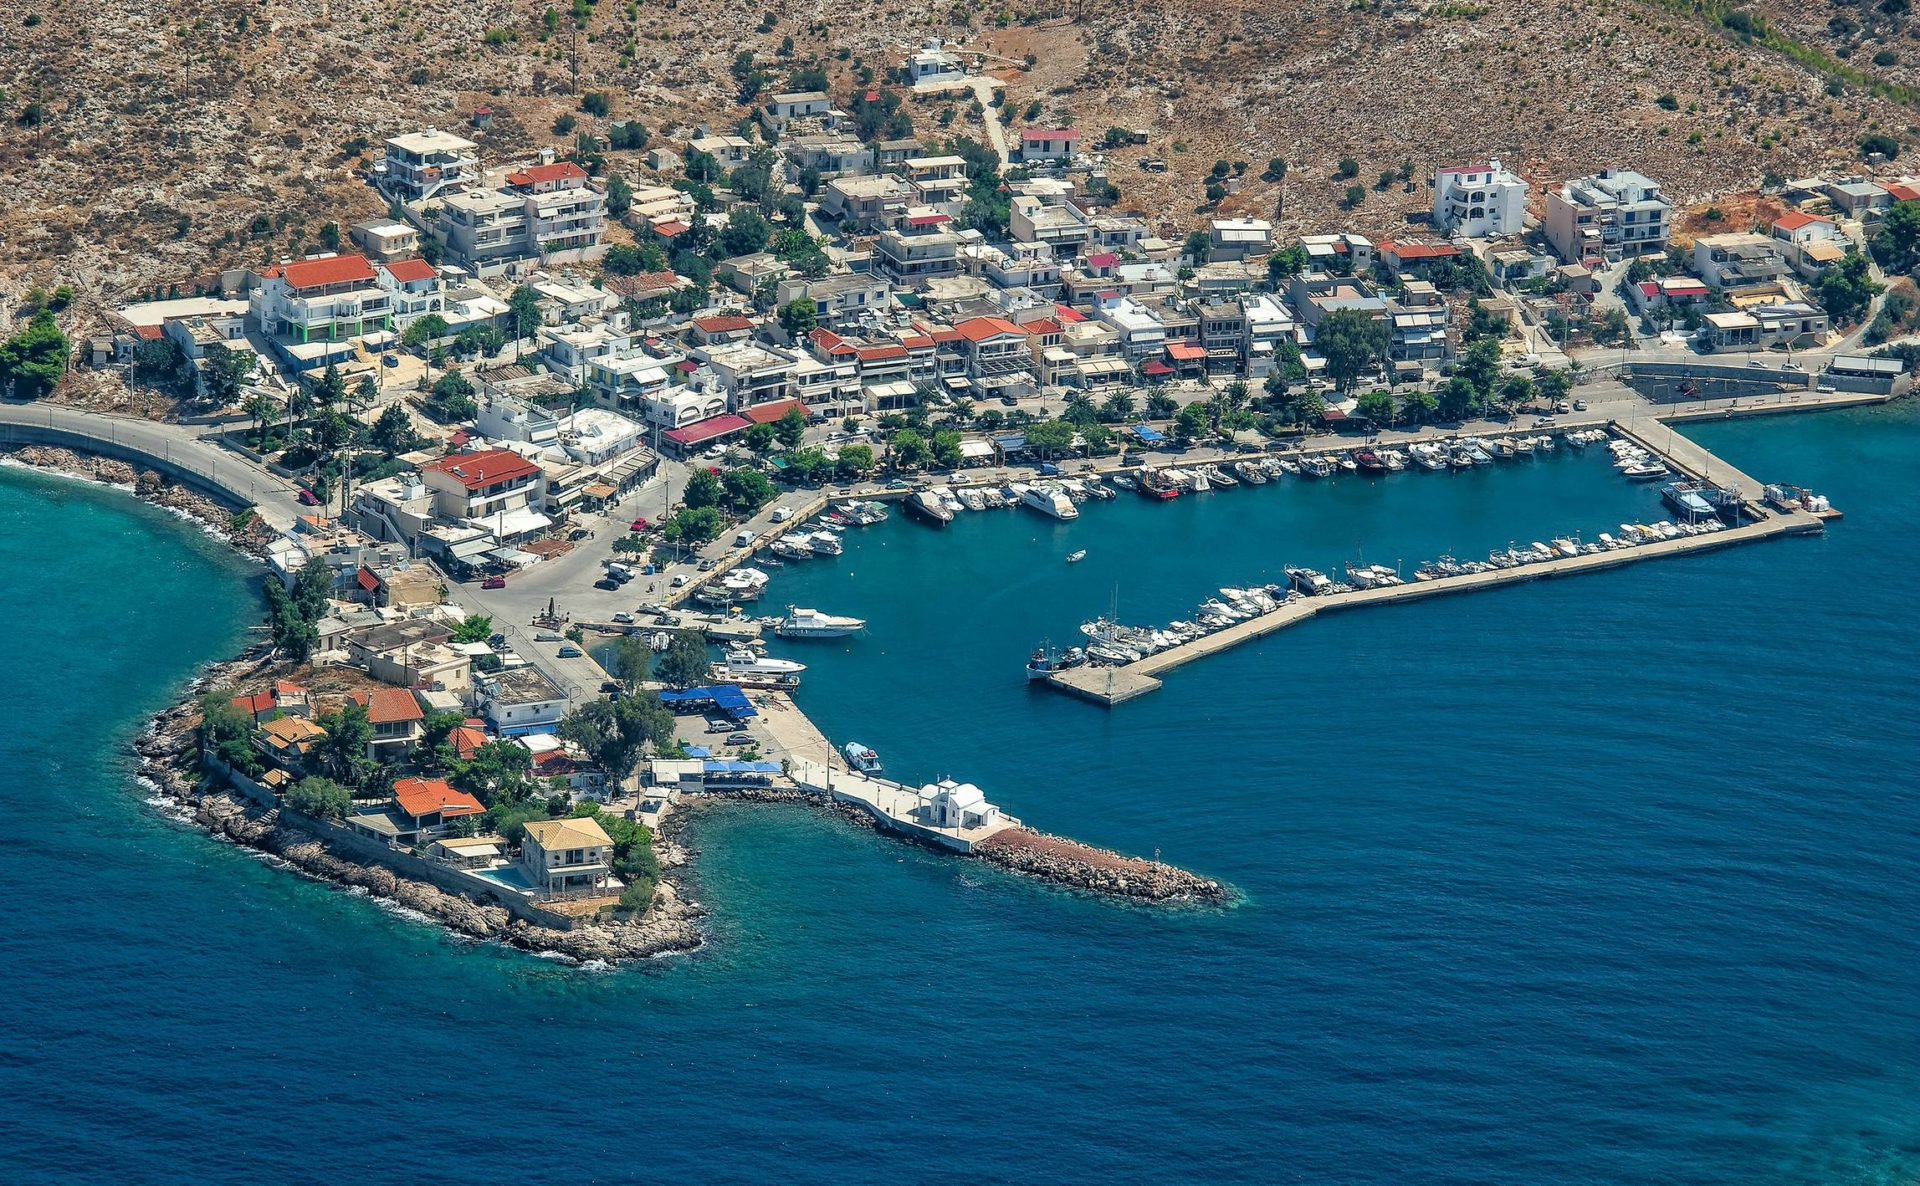 Pachi offers some of the cheapest homes in Greece for seaside living